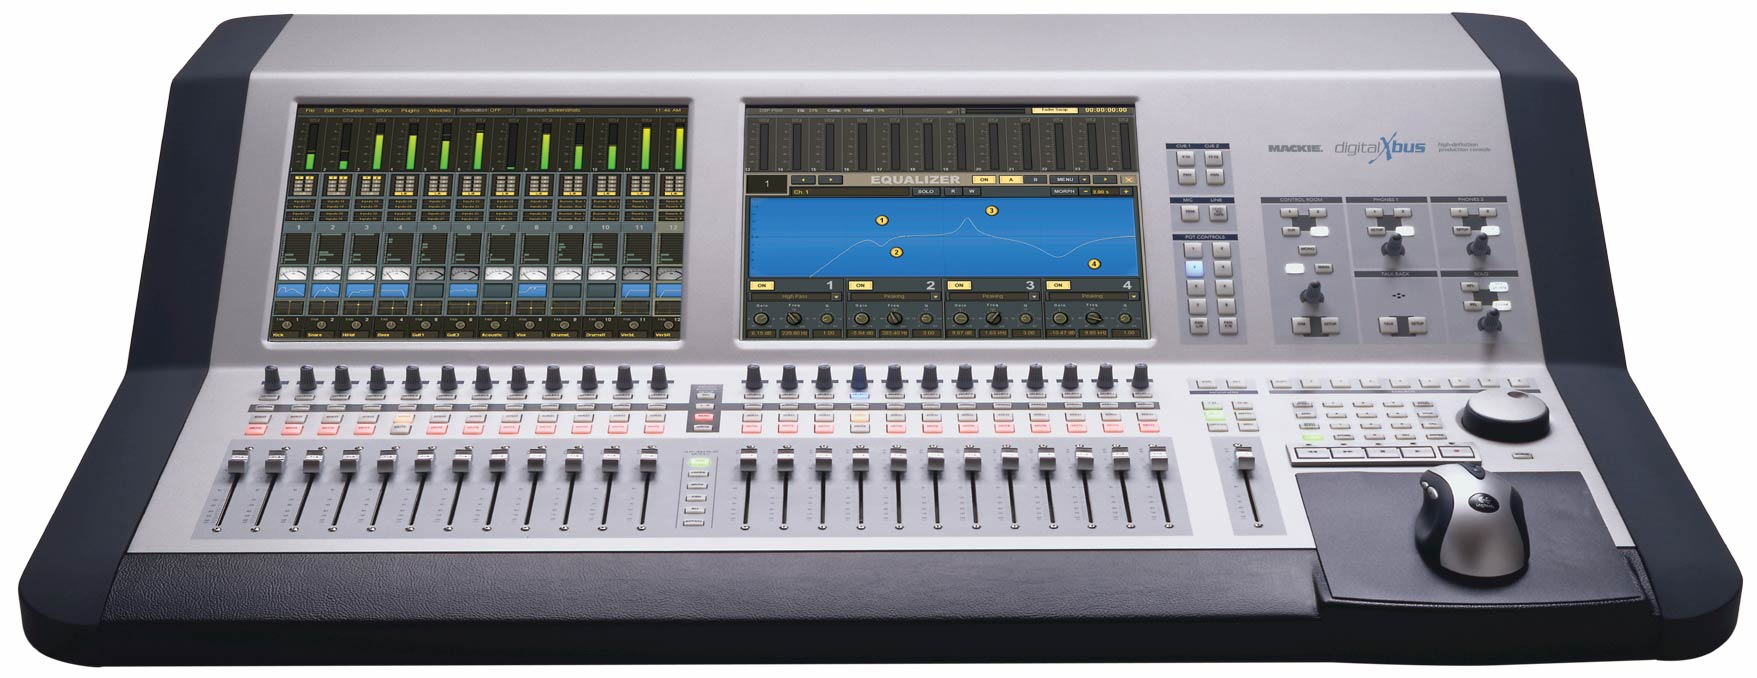 Dvd Player Pioneer Avh 5480dvd as well CmF2ZW4gbWl4ZXI in addition Yamaha M7cl 48 further Mackie Dl806 8 Channel Digital Live as well Roland vr 50hd multi format av mixer. on touch screen digital audio mixer